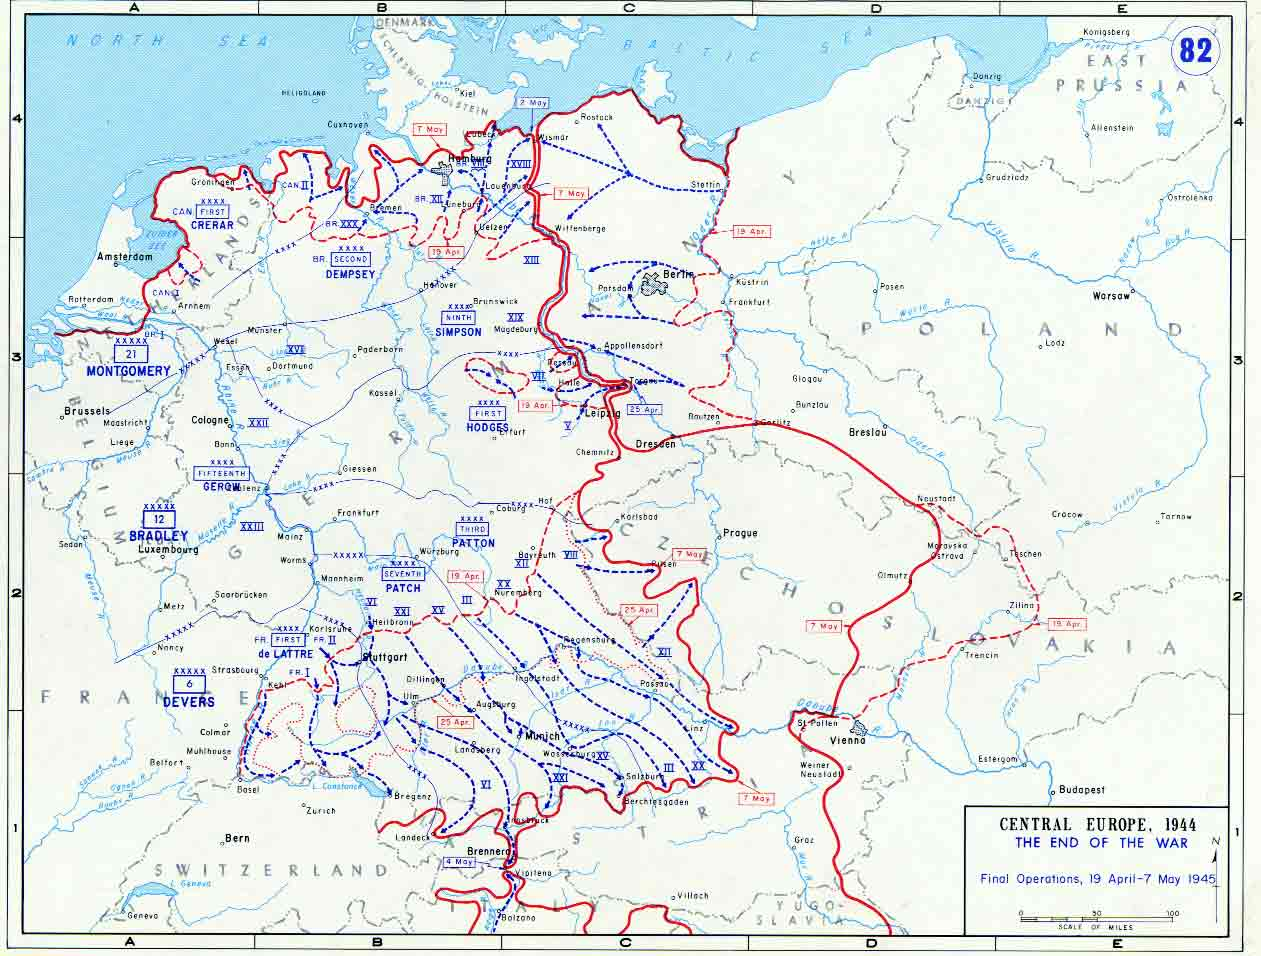 Map Of Final Allied Operations Of World War Ii April May